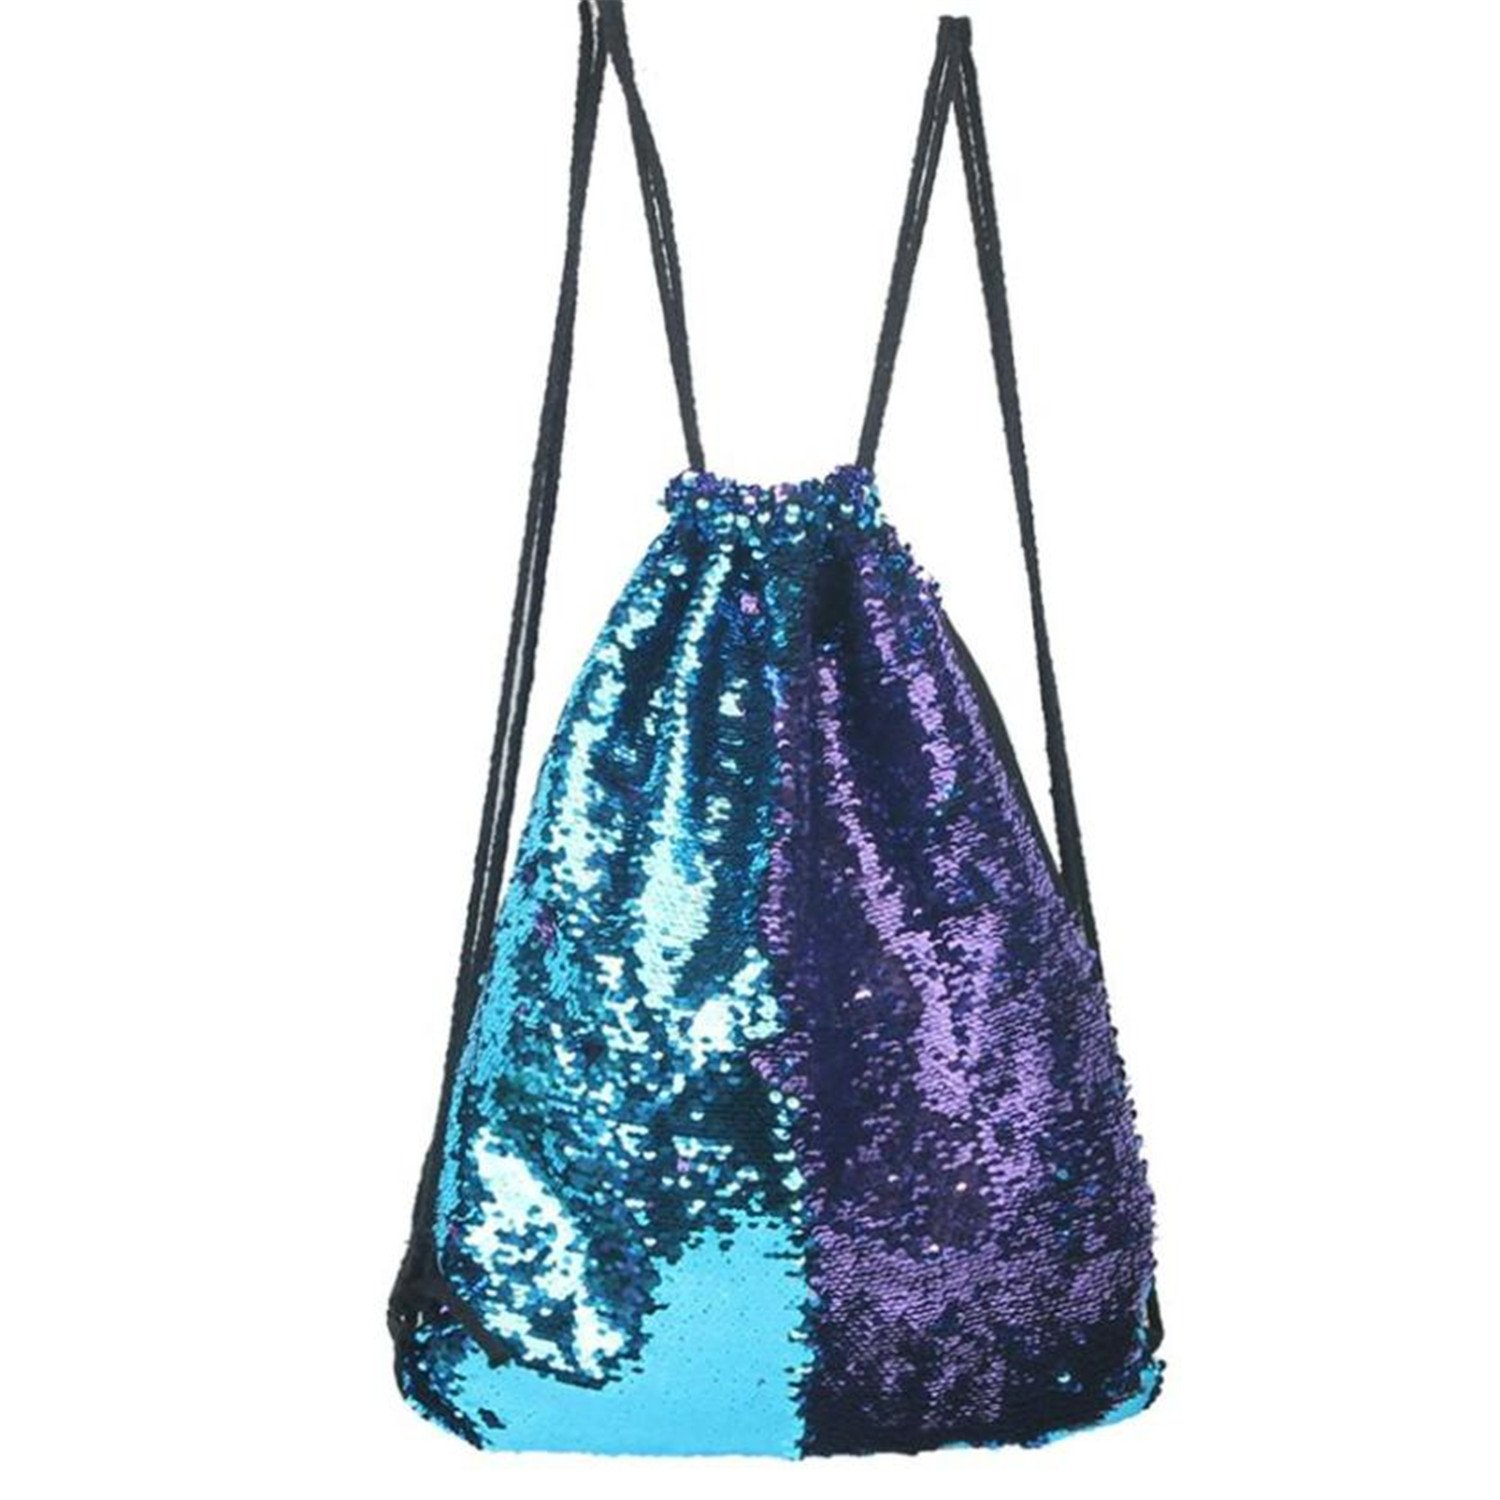 Amazon.com: Drawstring Bag Strap Panelled Double Color Sequins Women Men Shoulder Bag Straps for Backpack A: Computers & Accessories